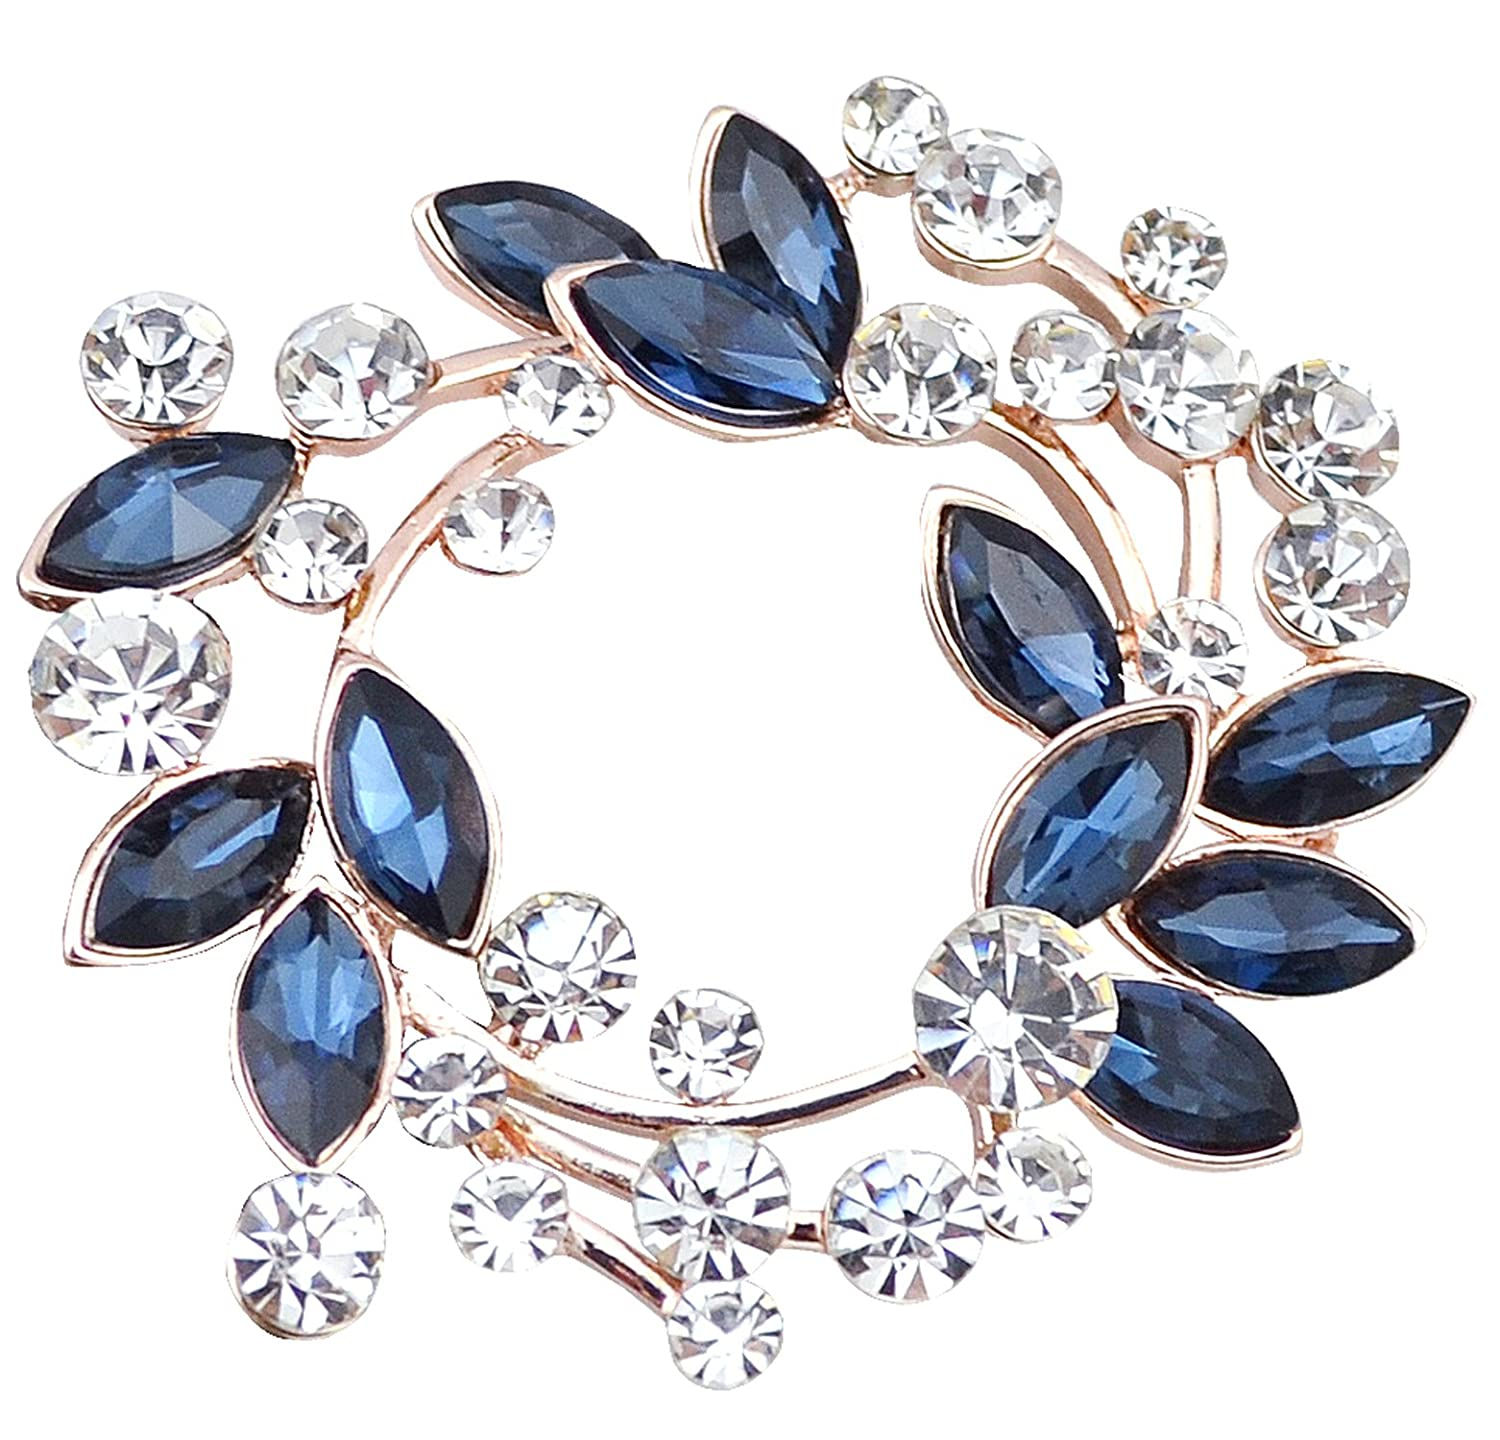 Gyn&Joy Clear Crystal Rhinestone Floral Wreath Pin Brooch BZ005